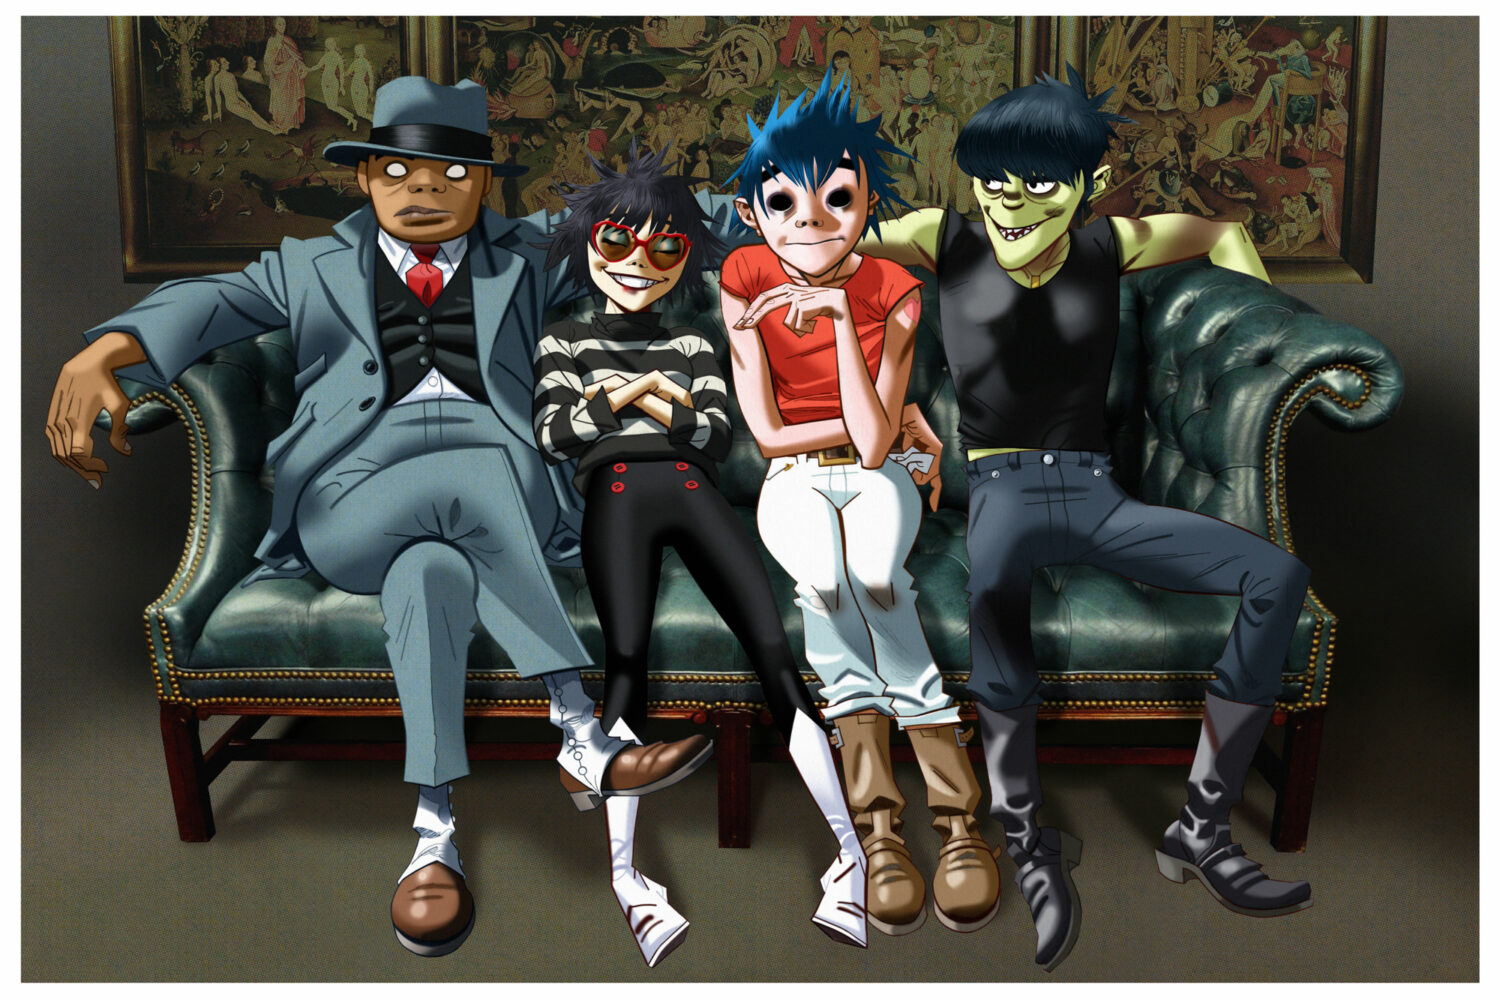 Our verdict on the four new Gorillaz songs - 'Saturnz Barz', 'Ascension', 'We Got The Power', 'Andromeda'